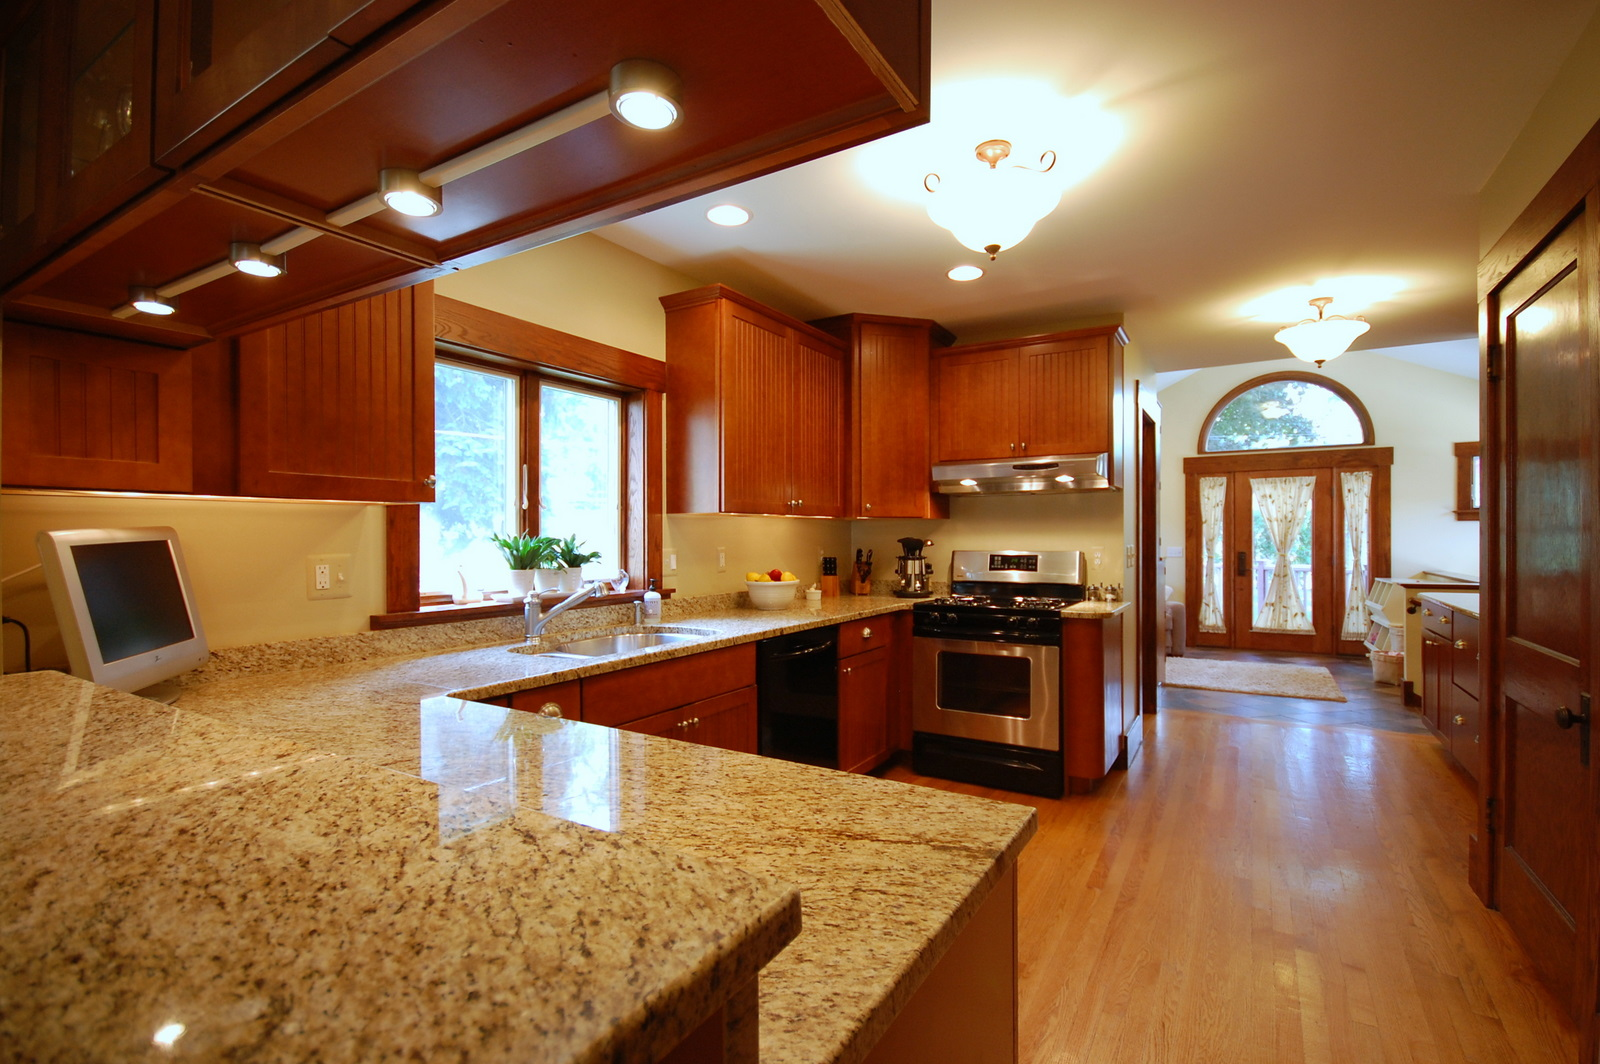 DESIGN GRANITE KITCHEN COUNTERTOPS « Kitchen Design Ideas